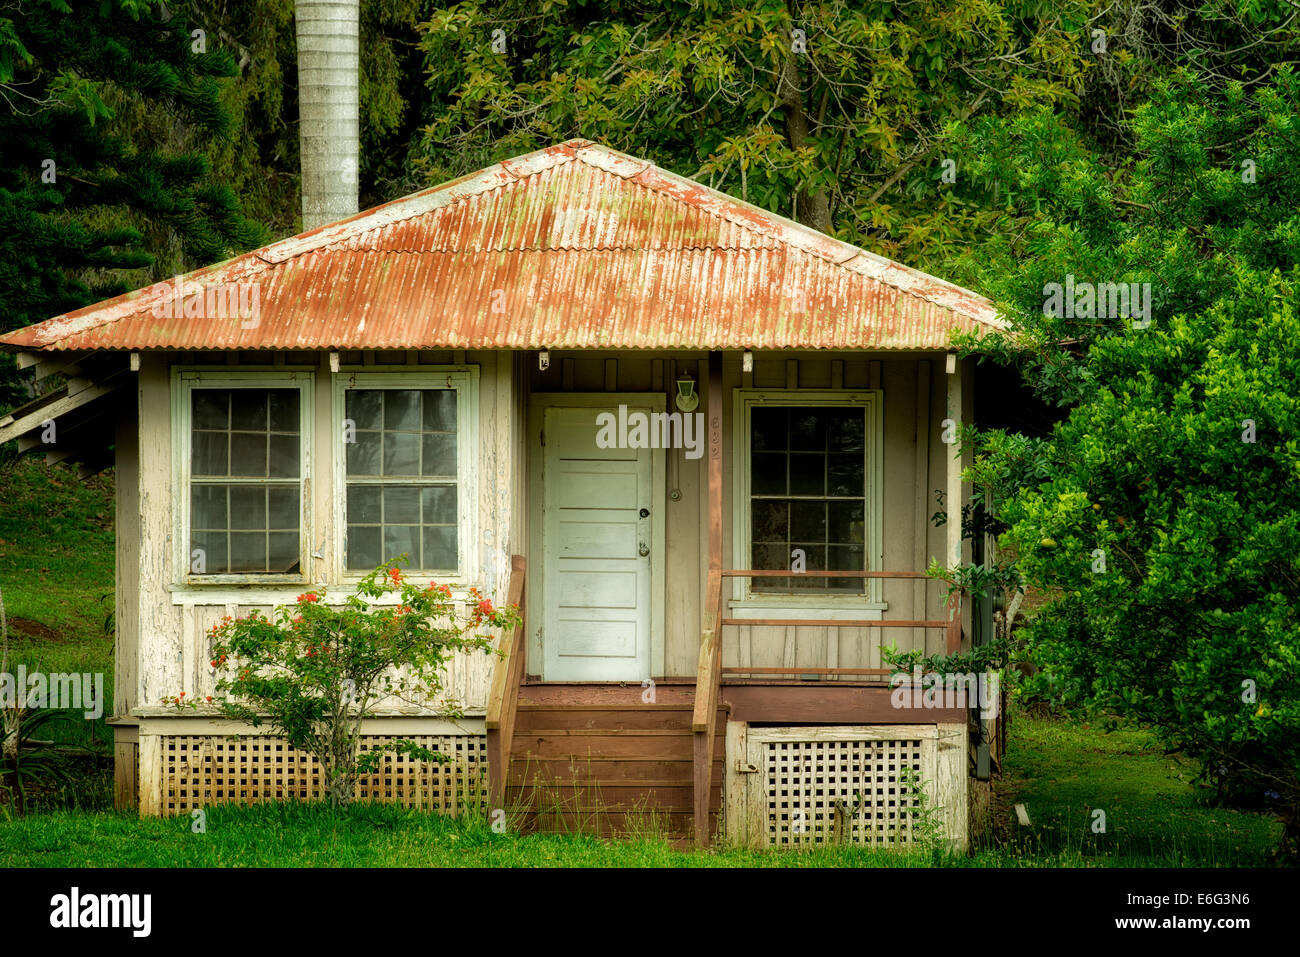 Old abandoned house in lanai city lanai hawaii stock for What is a lanai in a house